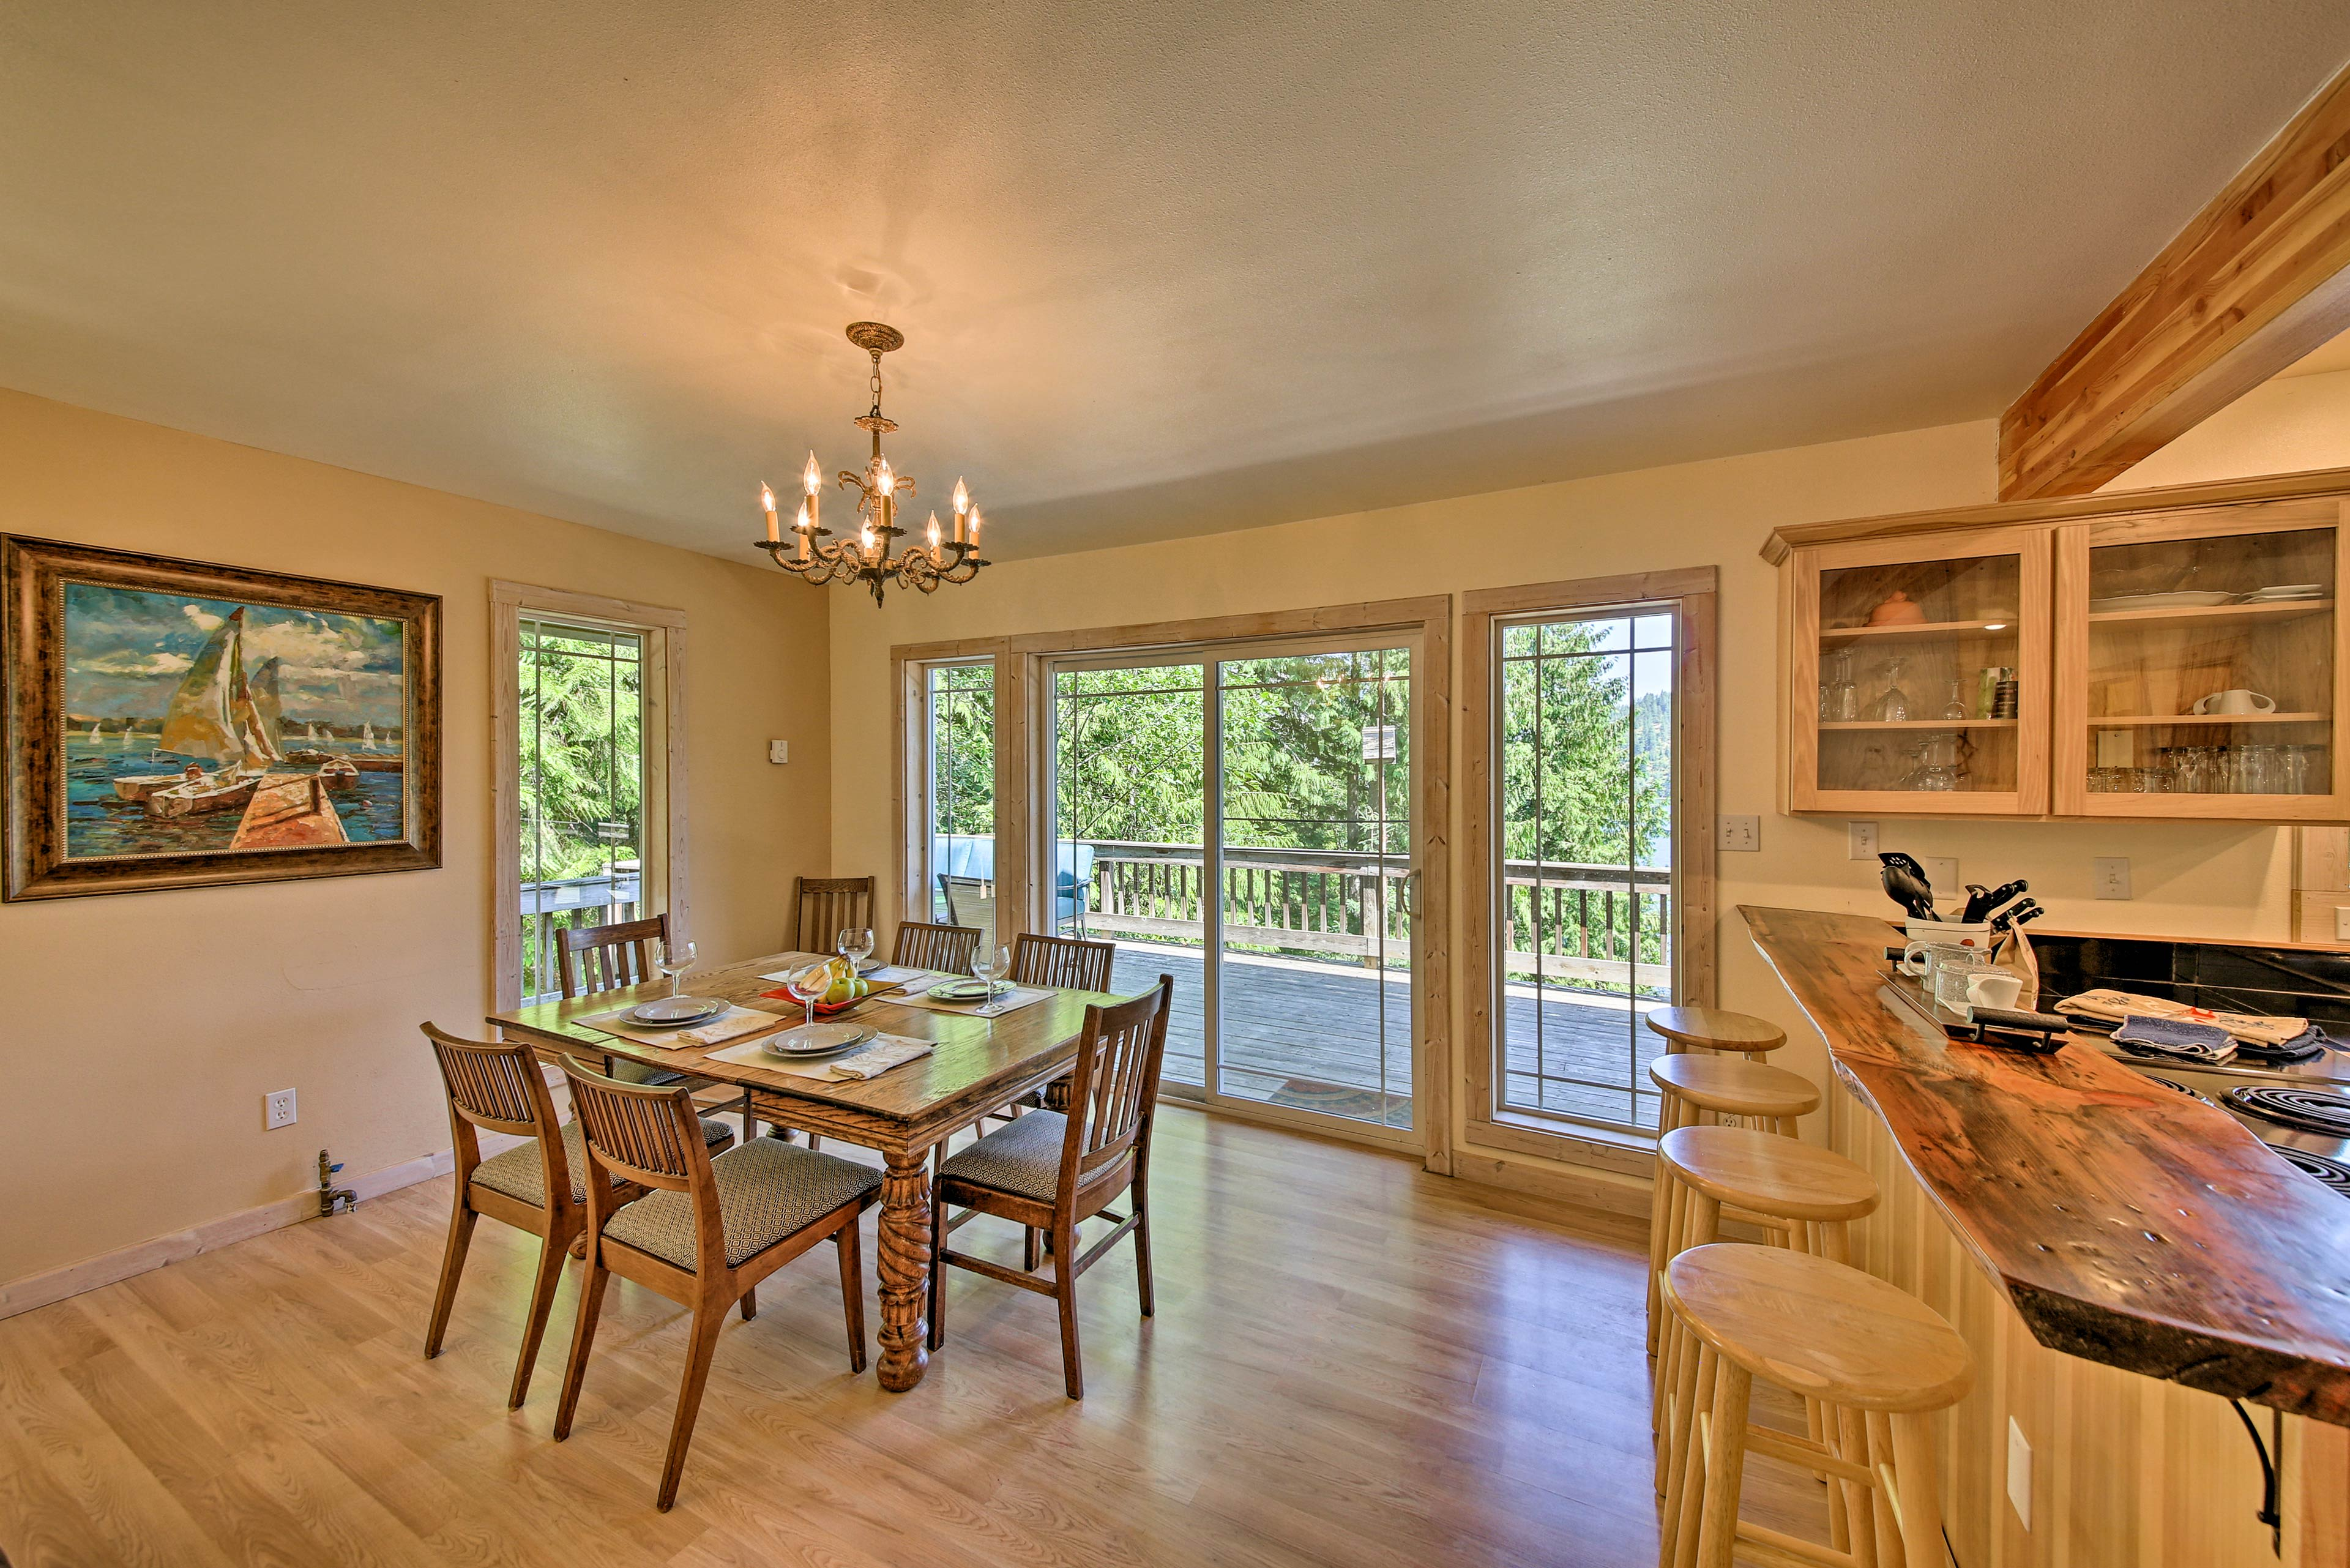 Dine in style at the 6-person table overlooking the deck and lake.